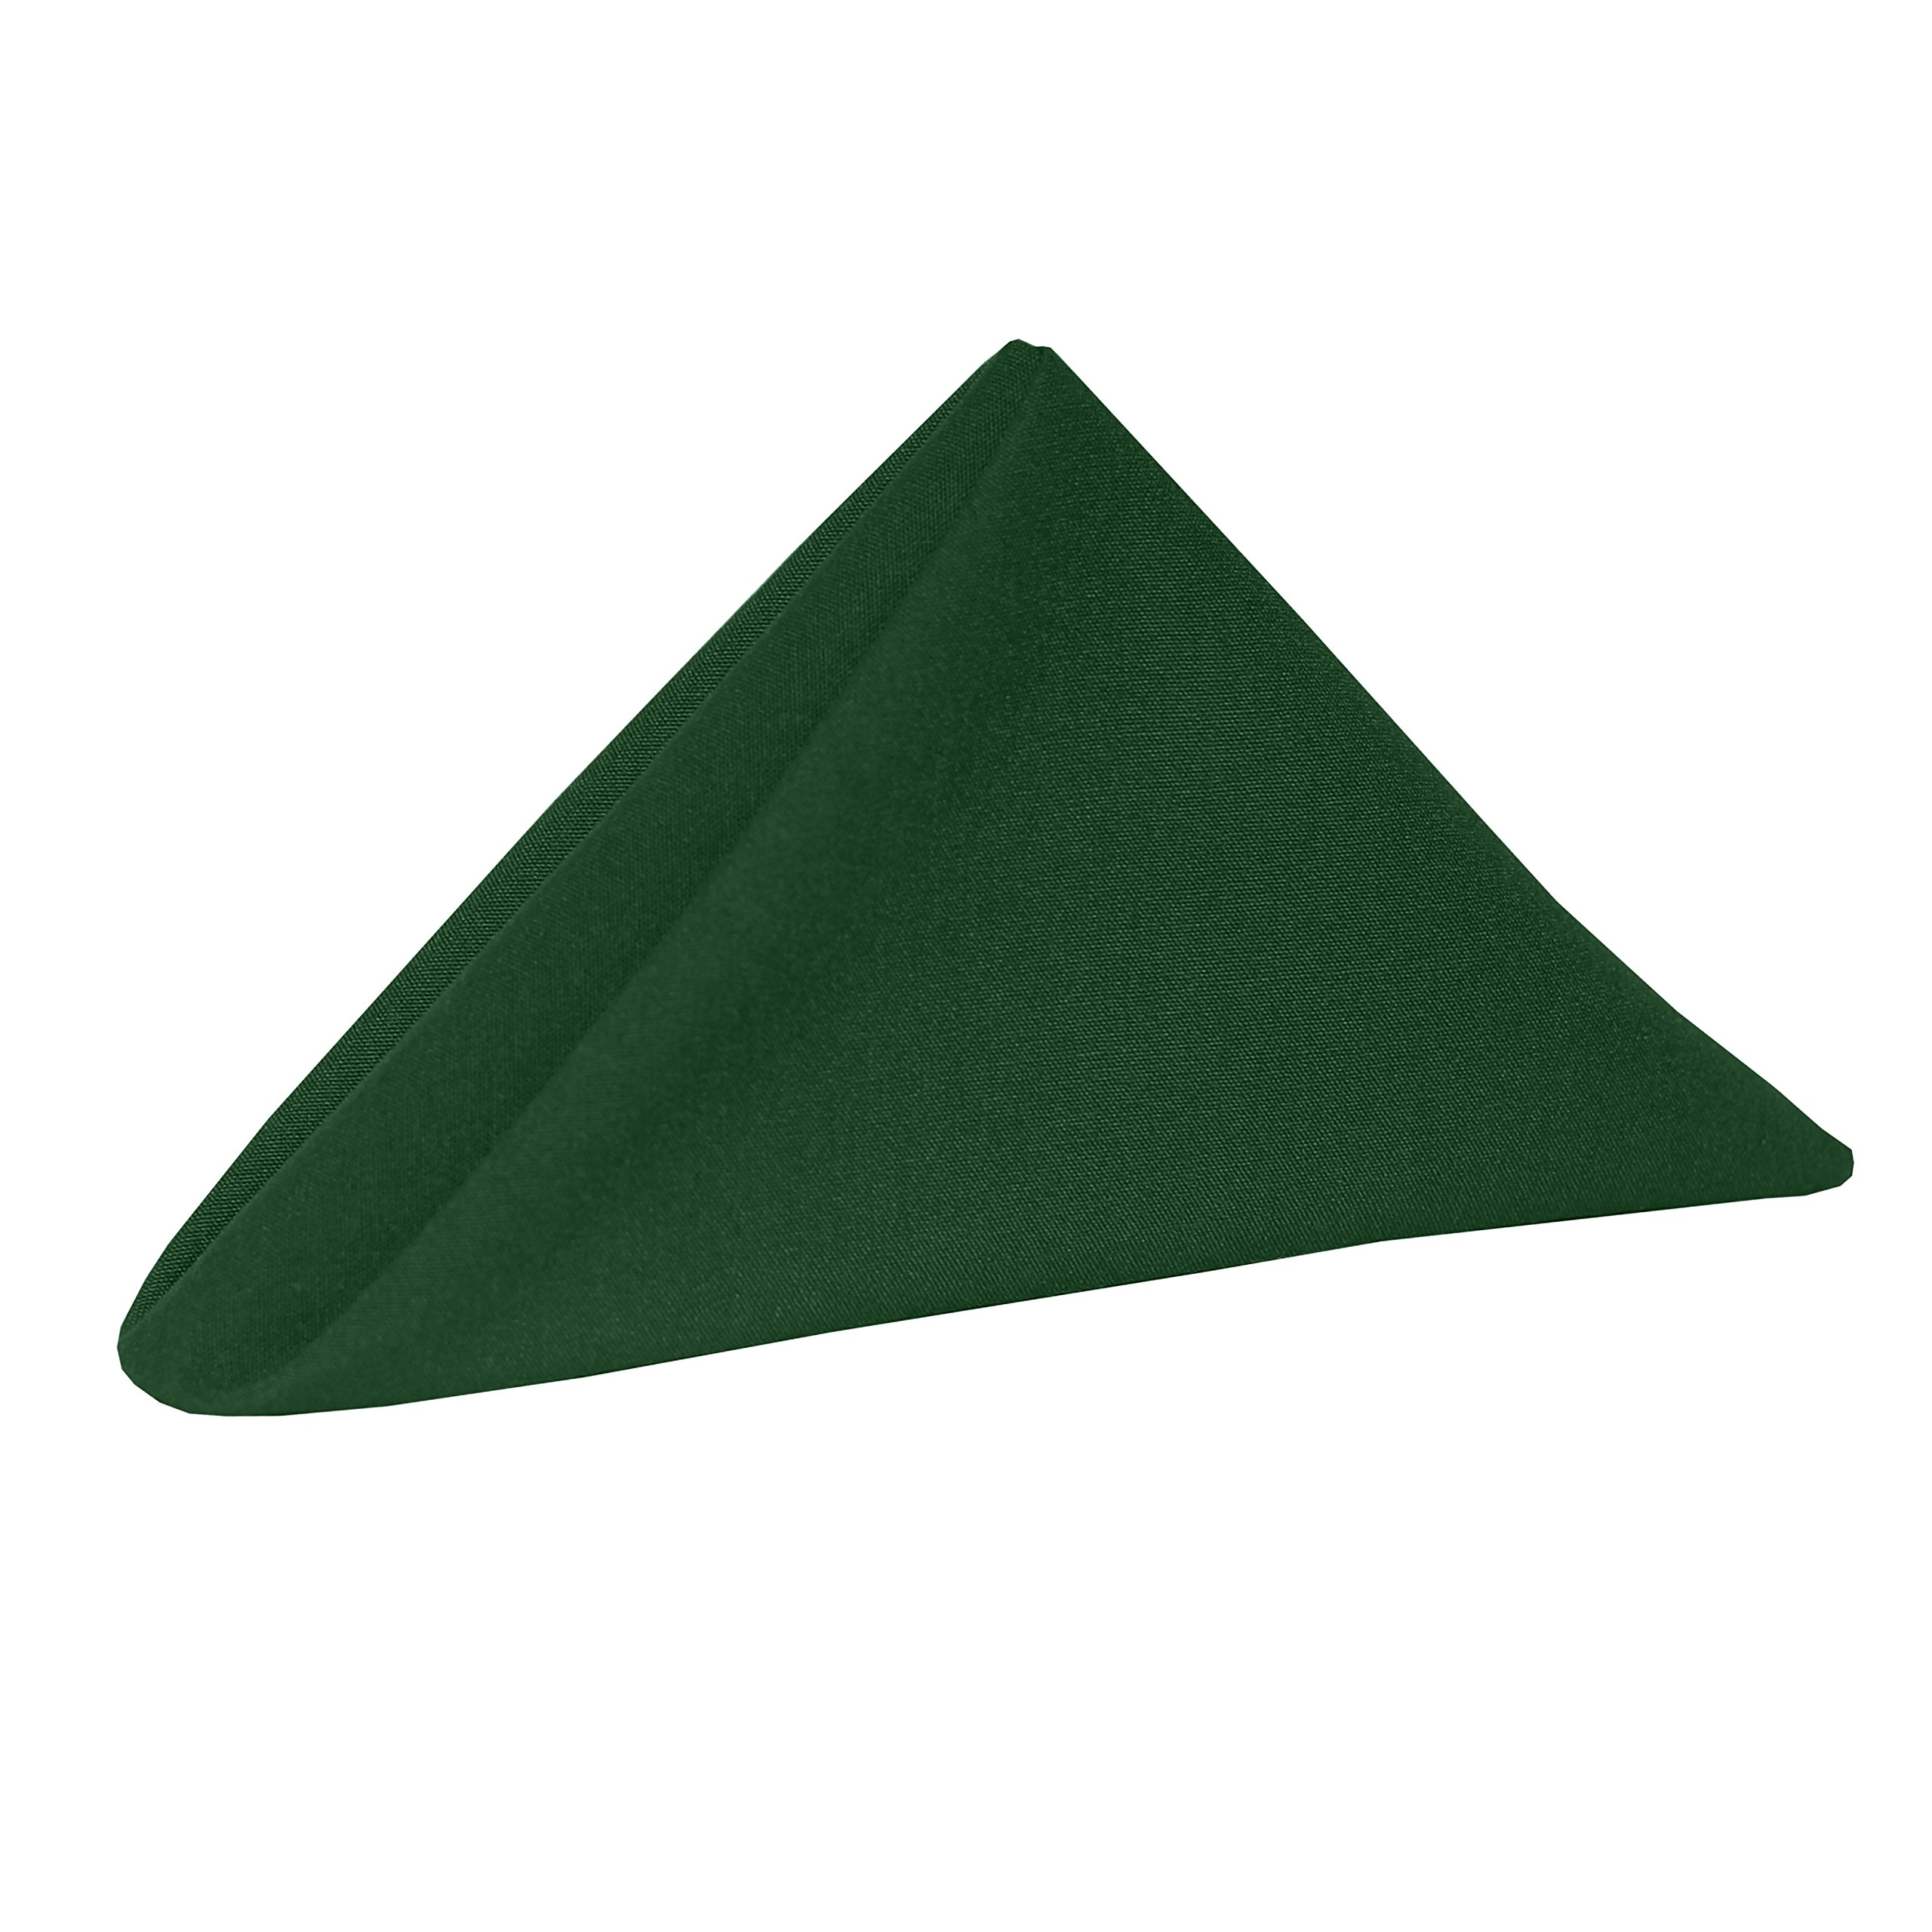 Ultimate Textile (10 Dozen) Cotton-feel Spun Polyester 17 x 17-Inch Cloth Napkins - for Wedding and Banquet, Hotel or Home Fine Dining use, Hunter Green